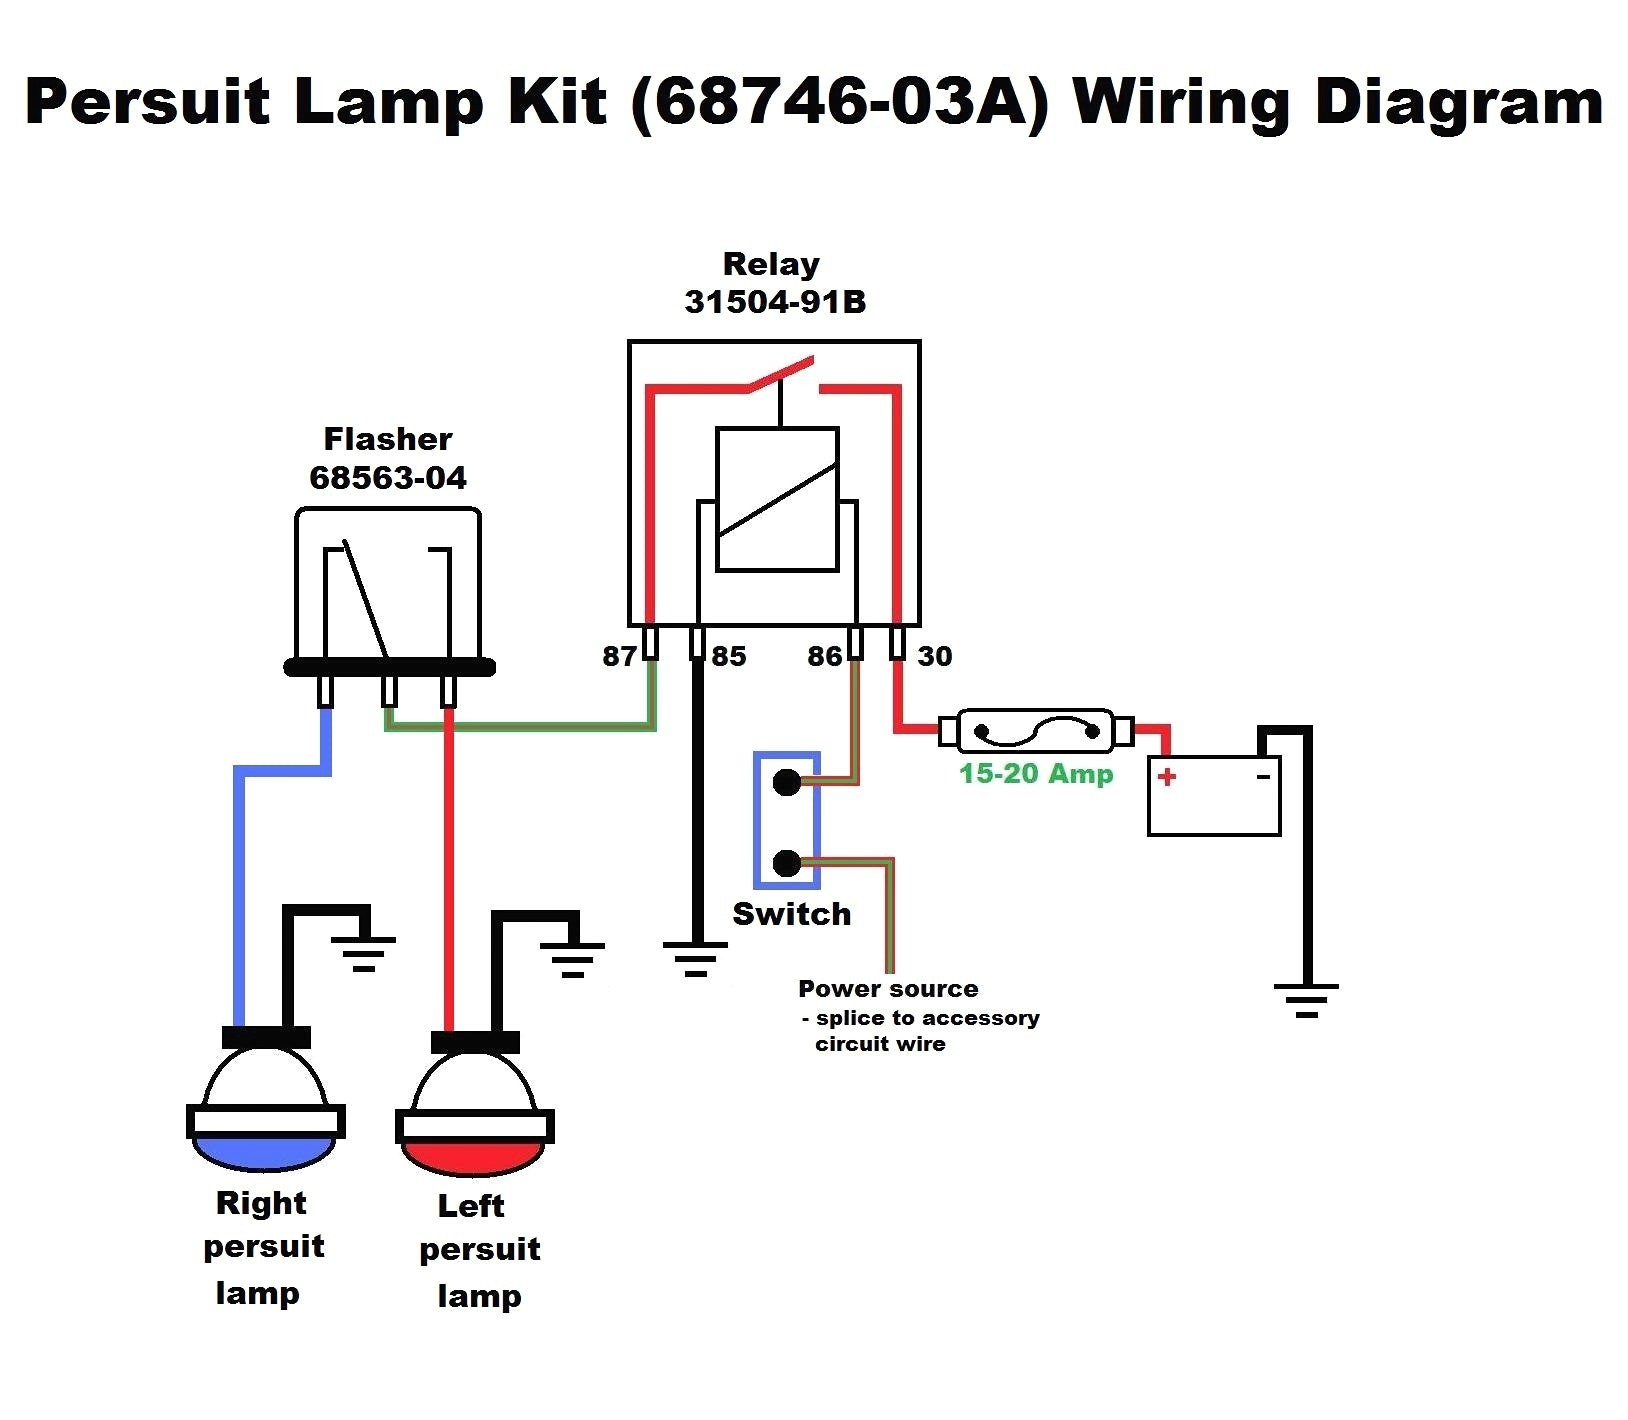 Turn Signal Flasher Wiring Diagram Signal Light Flasher Wiring Diagram Elegant Turn Signal Wiring Of Turn Signal Flasher Wiring Diagram Free Download S Series Wiring Diagram Wiring Diagram Database